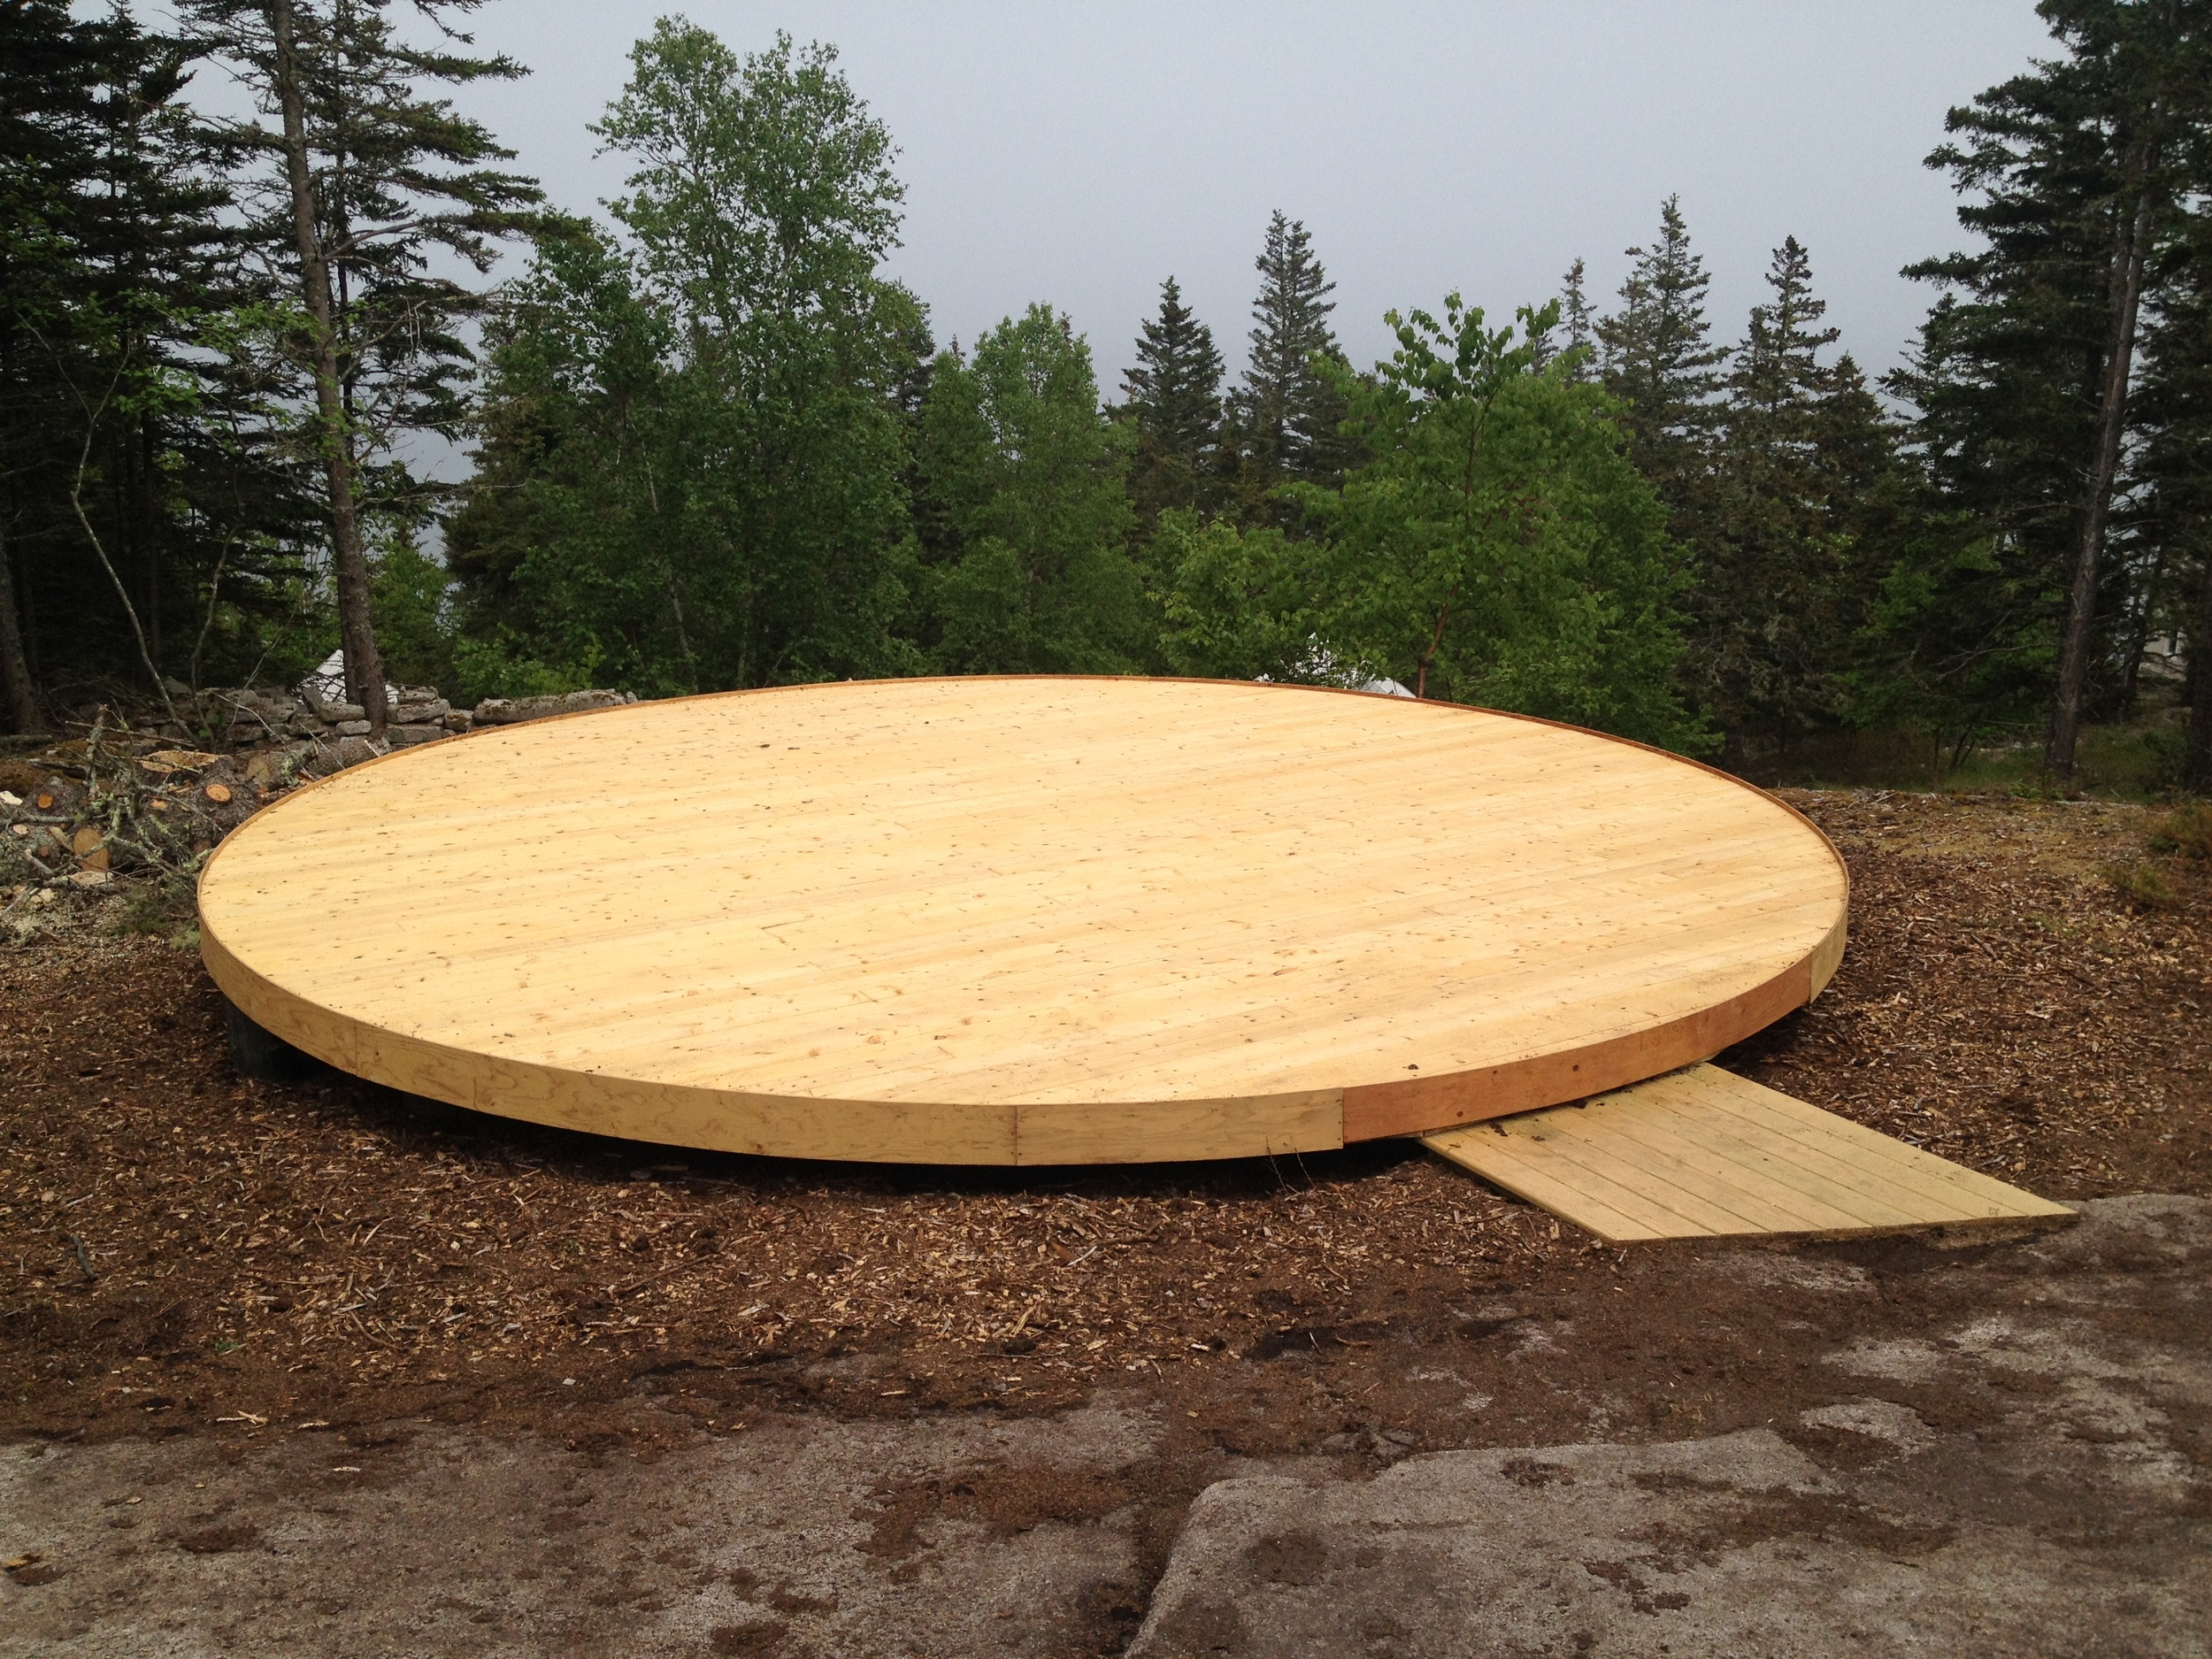 Yurt platforms stand at the ready